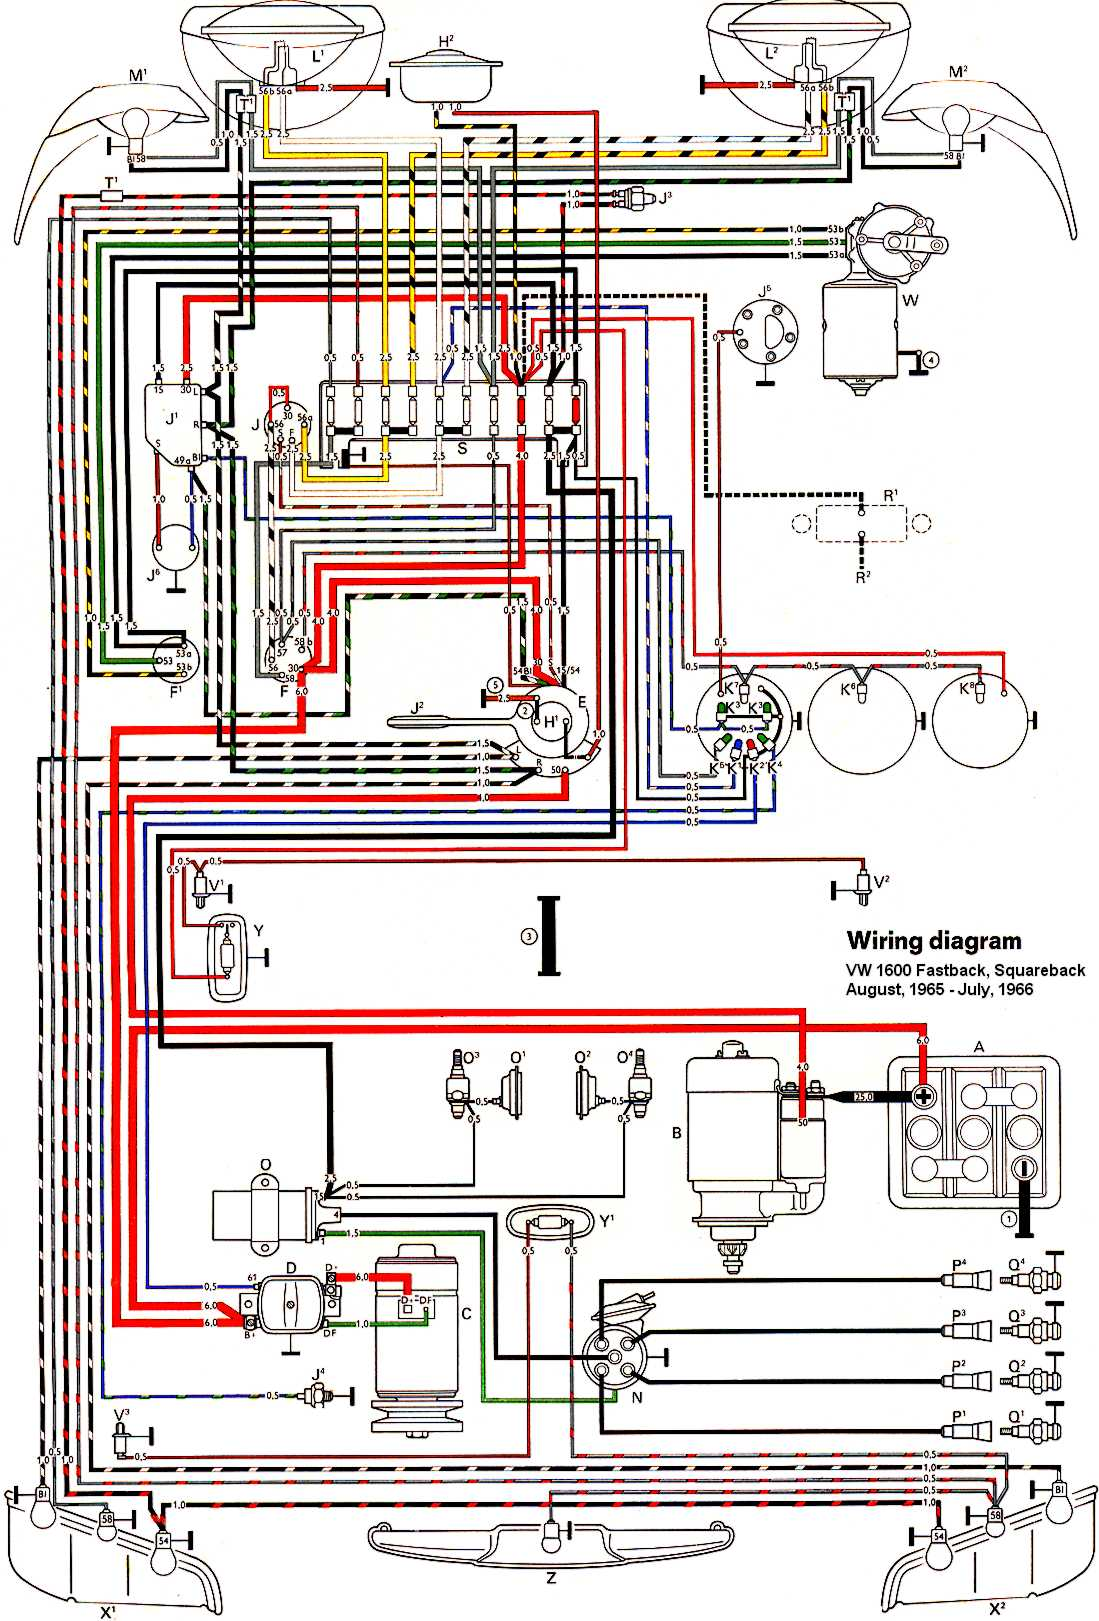 thesamba com type 3 wiring diagrams rh thesamba com 1966 VW Beetle Wiring  Diagram 1966 VW